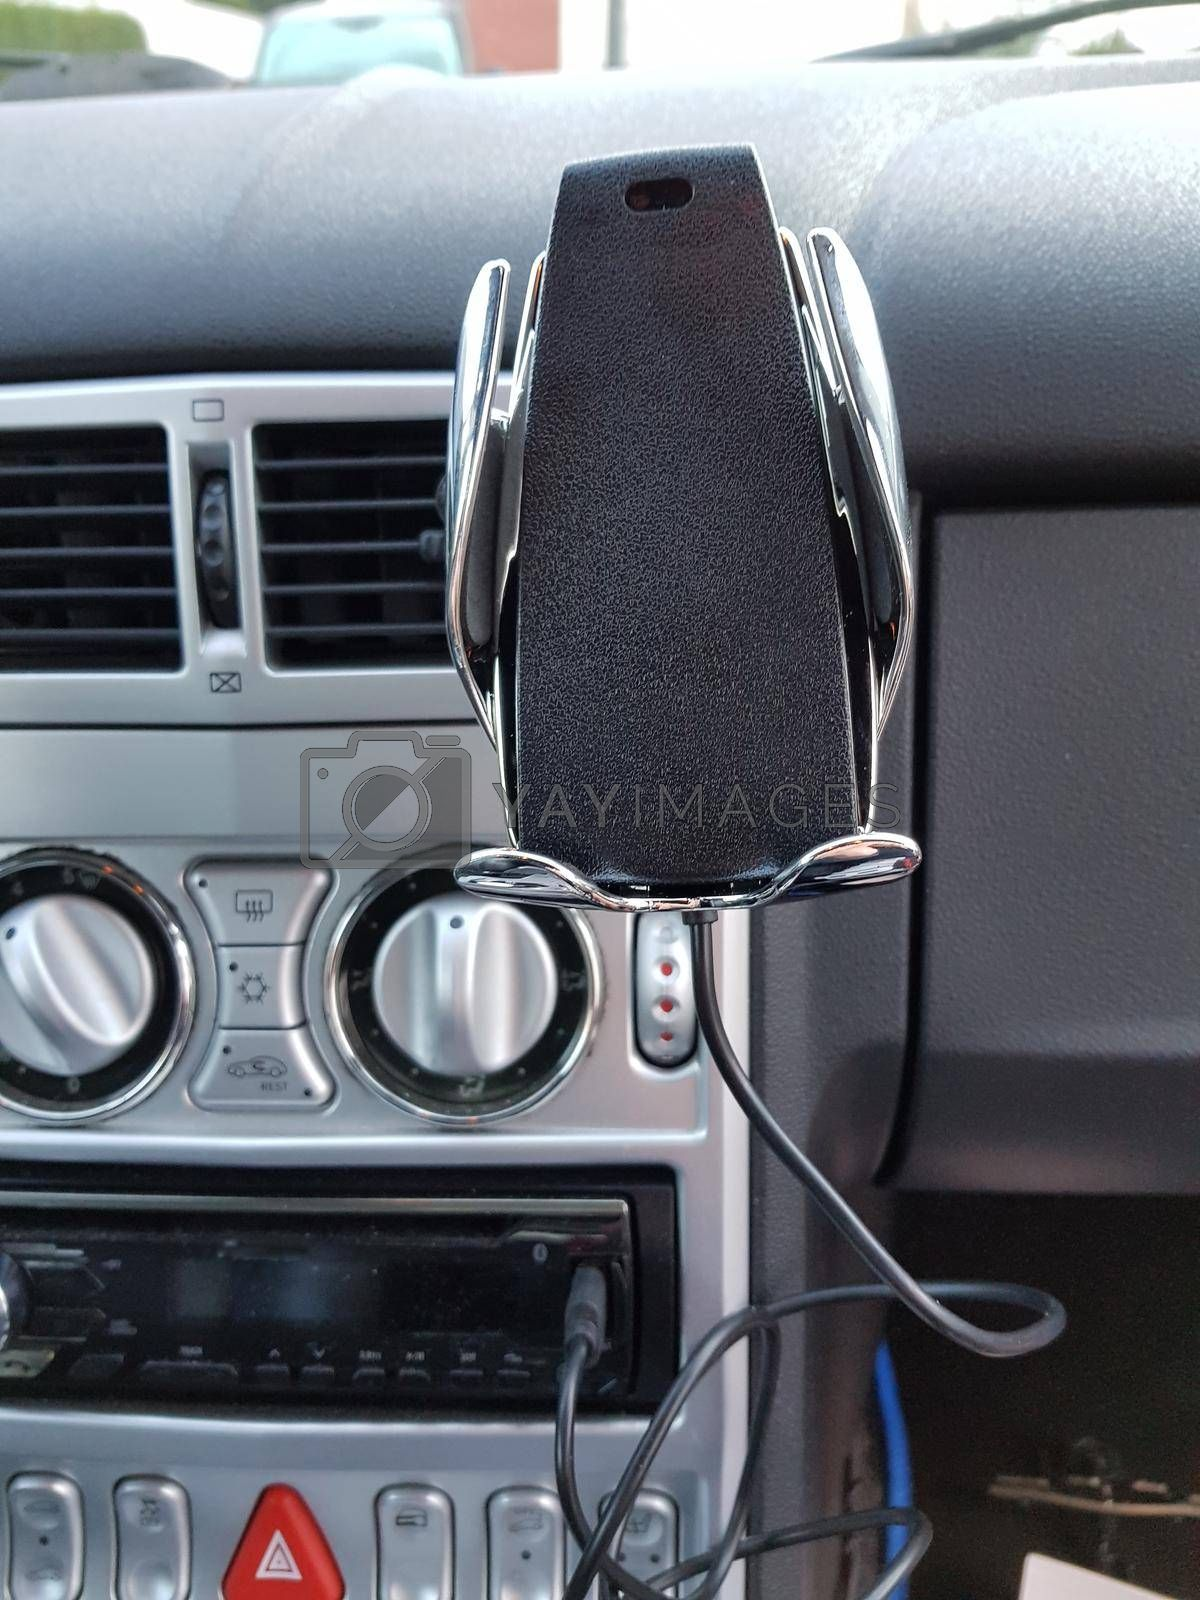 Royalty free image of Car interior with cell phone holder    by JFsPic